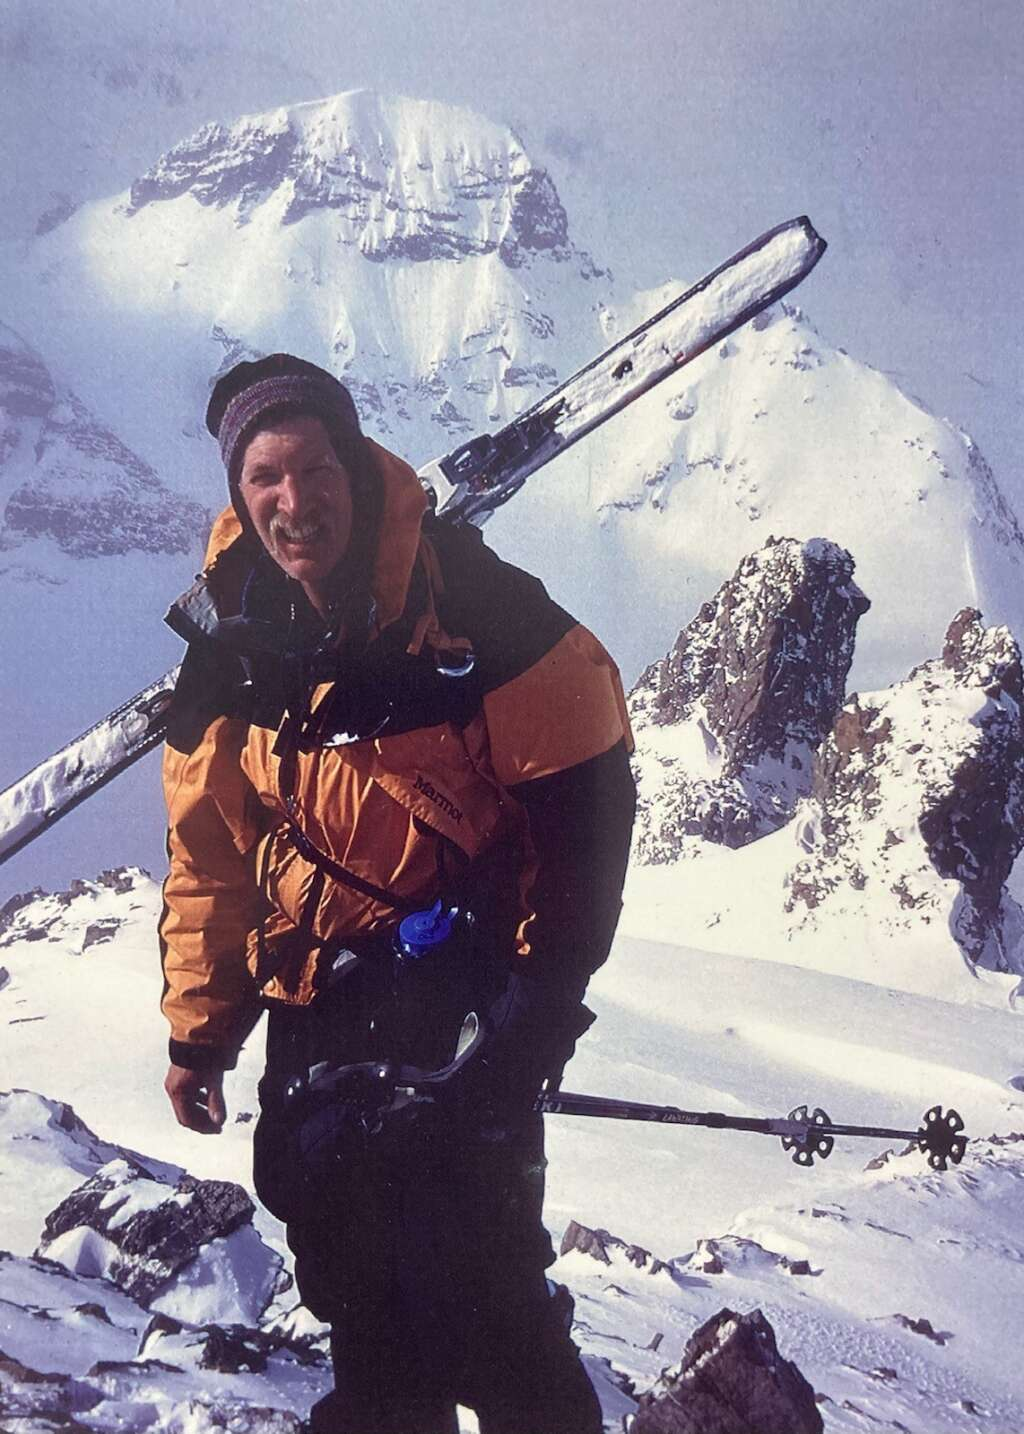 David Jefferson does the Haute Route in the Alps in 1997. The backcountry trip is responsible for influencing David and his friends to create the Summit Huts Association. | Photo from Lauren Jefferson